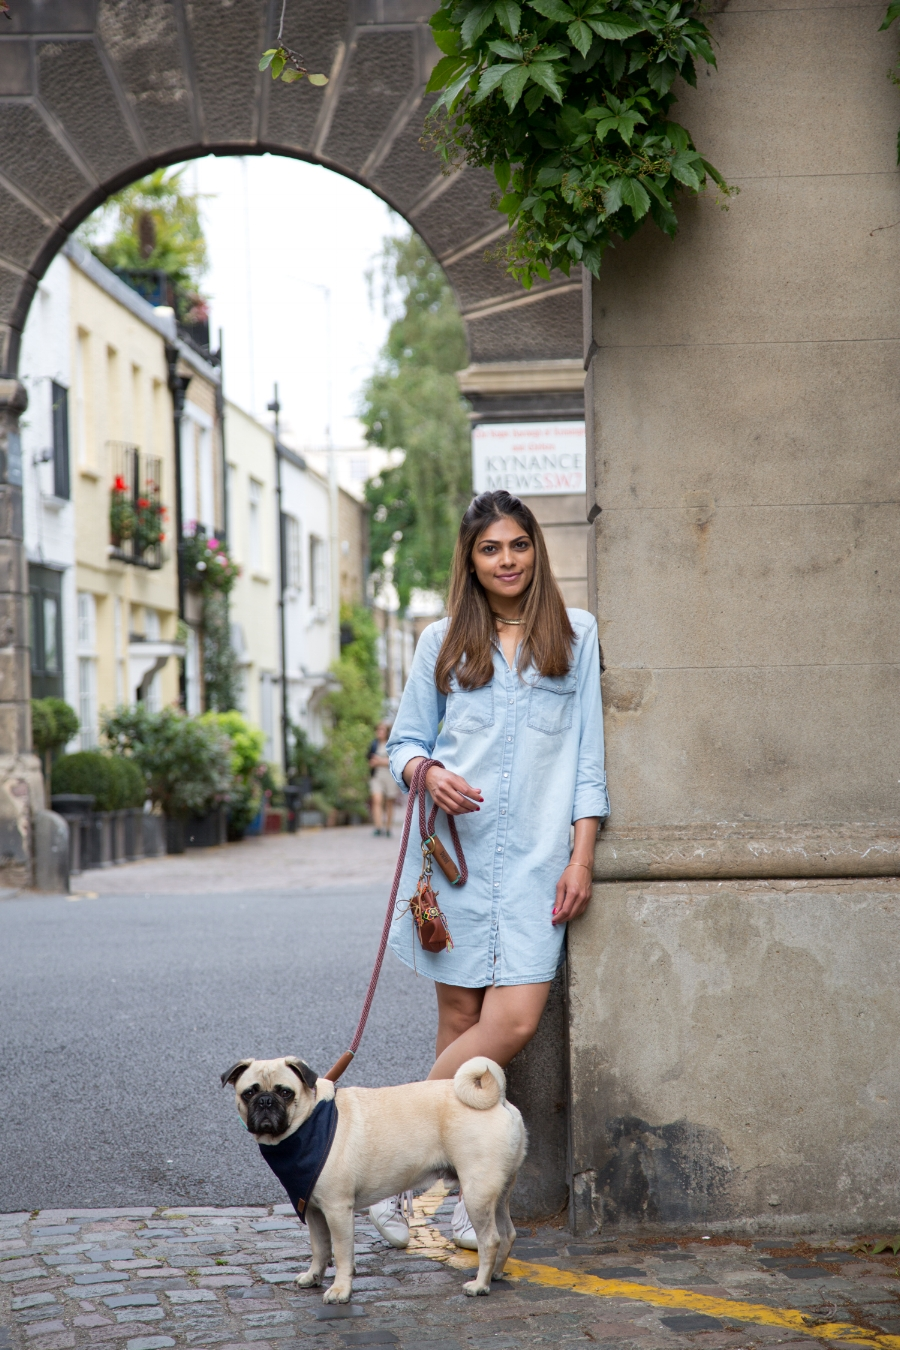 honeyidressedthepug-dogfashion-petfashion-cooldogs-london-petfashionblog-dogfashionblog-coolpups-poochette-rewardpouch-fashionfordapperdogs-dogfashionworld-bestindogfashion-humanandhound-dogblog-petblog-fashion&lifestyle-dogaccessories-walkies-DWAM-bohemianaccessoriesfordogs-bohemian-boho-bohoaccessories